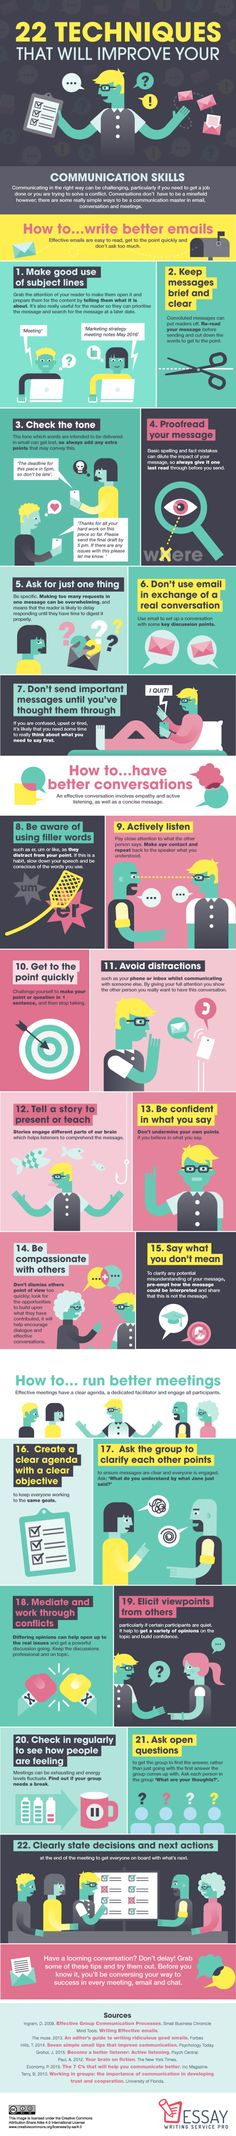 22 techniques that will improve your communication skill